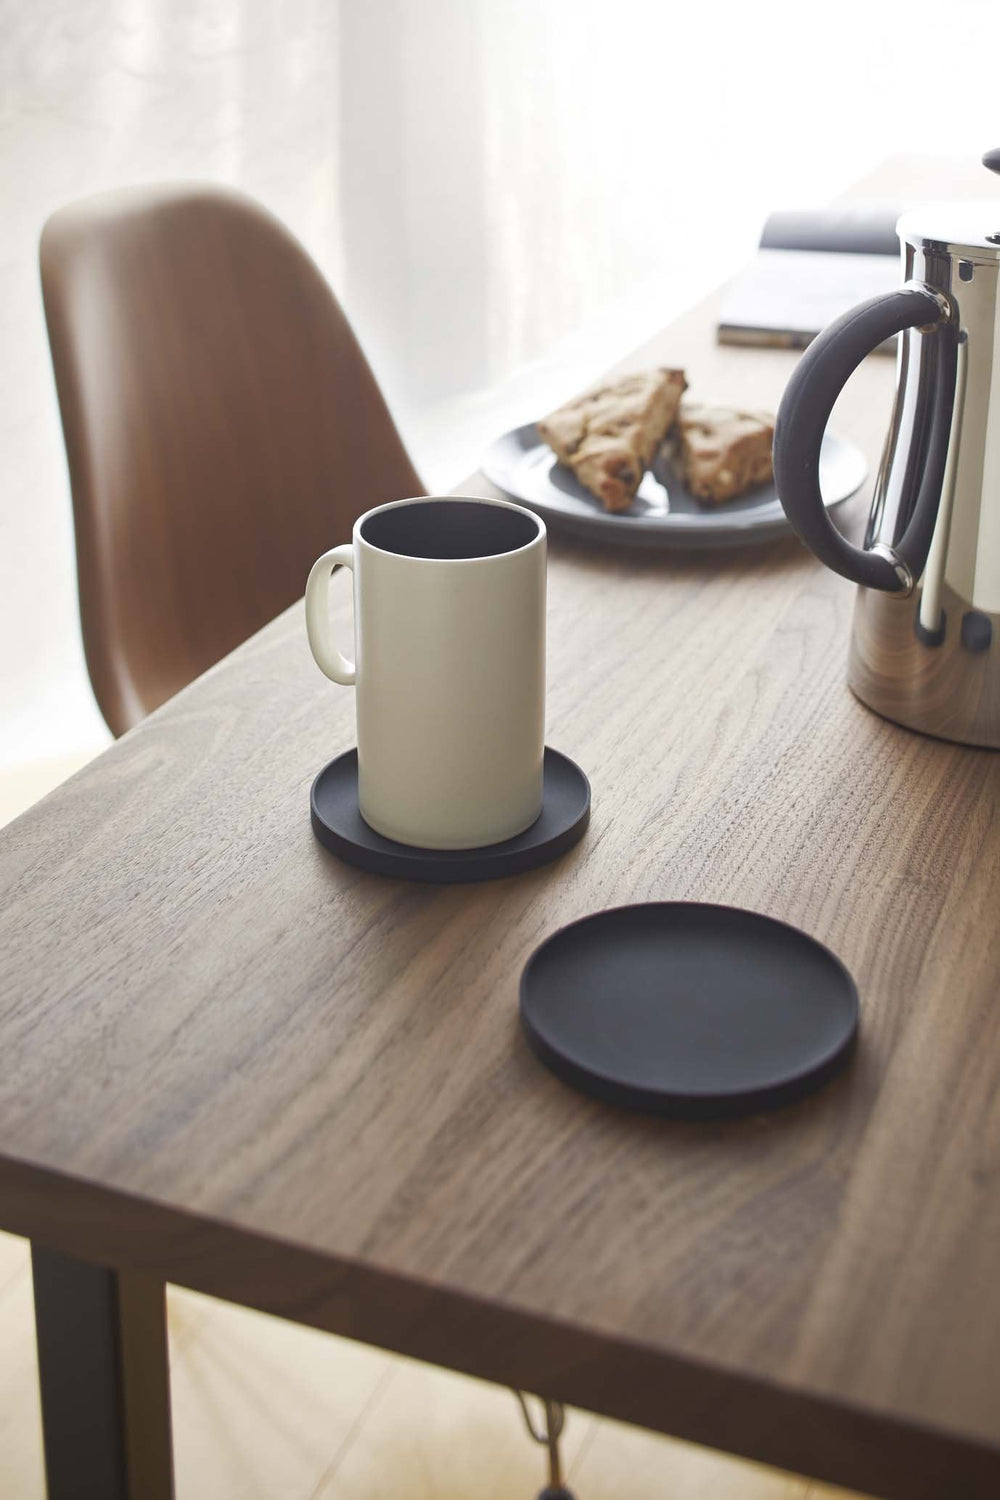 Two Yamazaki black round coasters on the wooden table. One of them hold a white mug